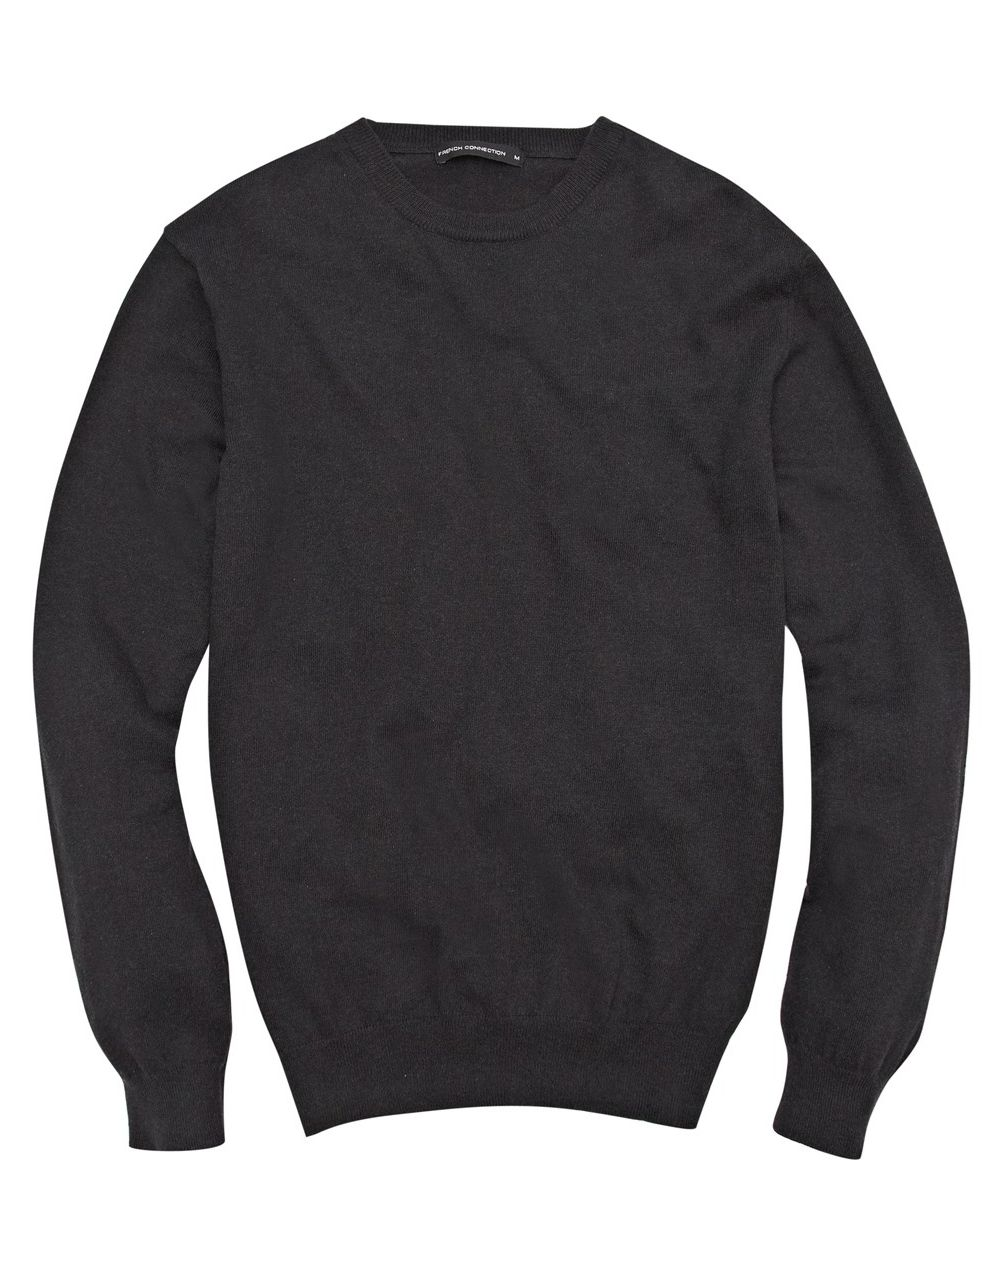 Perfect cotton cashmere crew neck jumper